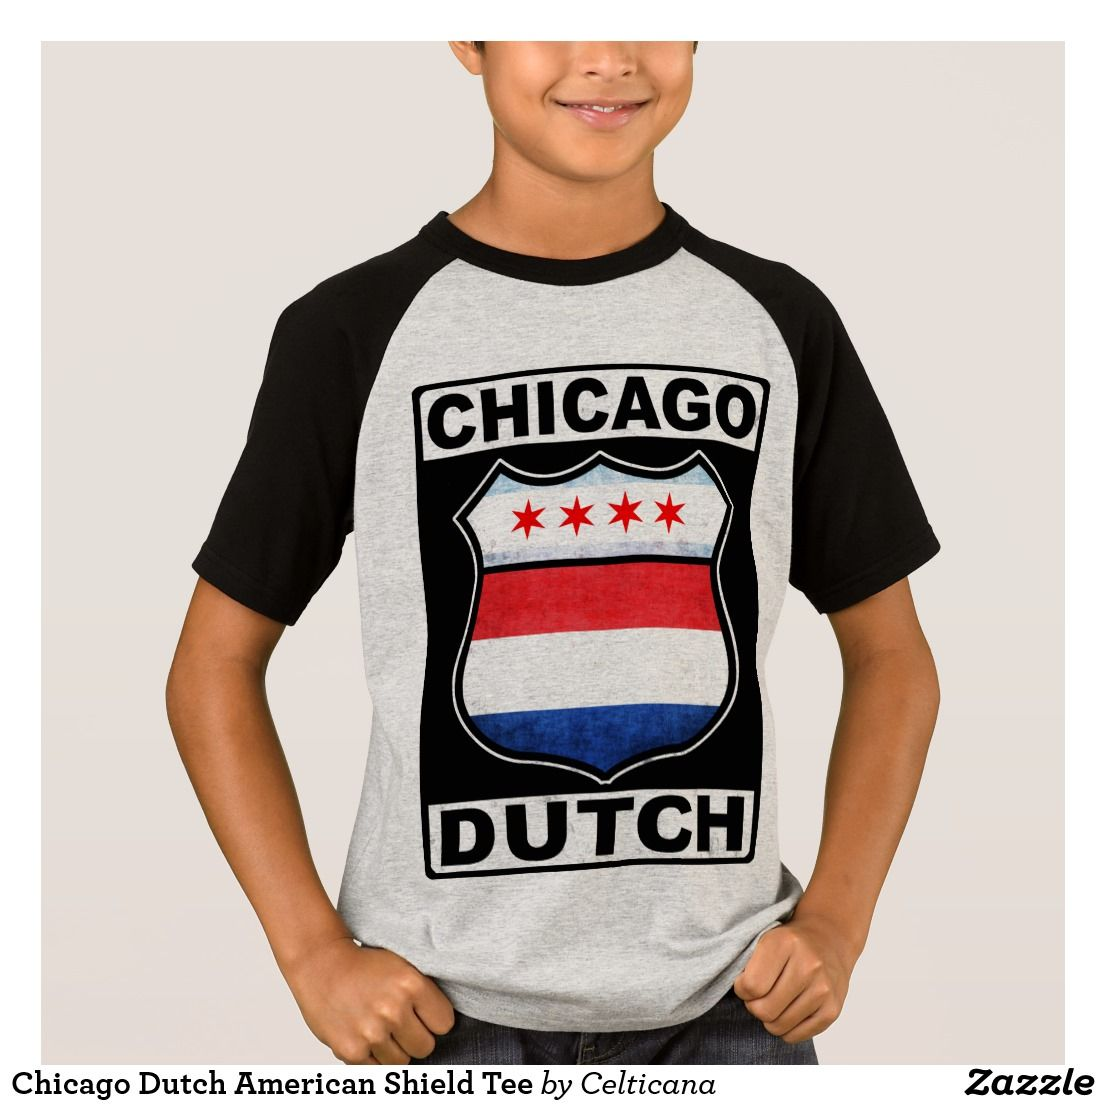 9f8cf2ed20a Chicago Dutch American Shield Tee Shirt. If you are Dutch